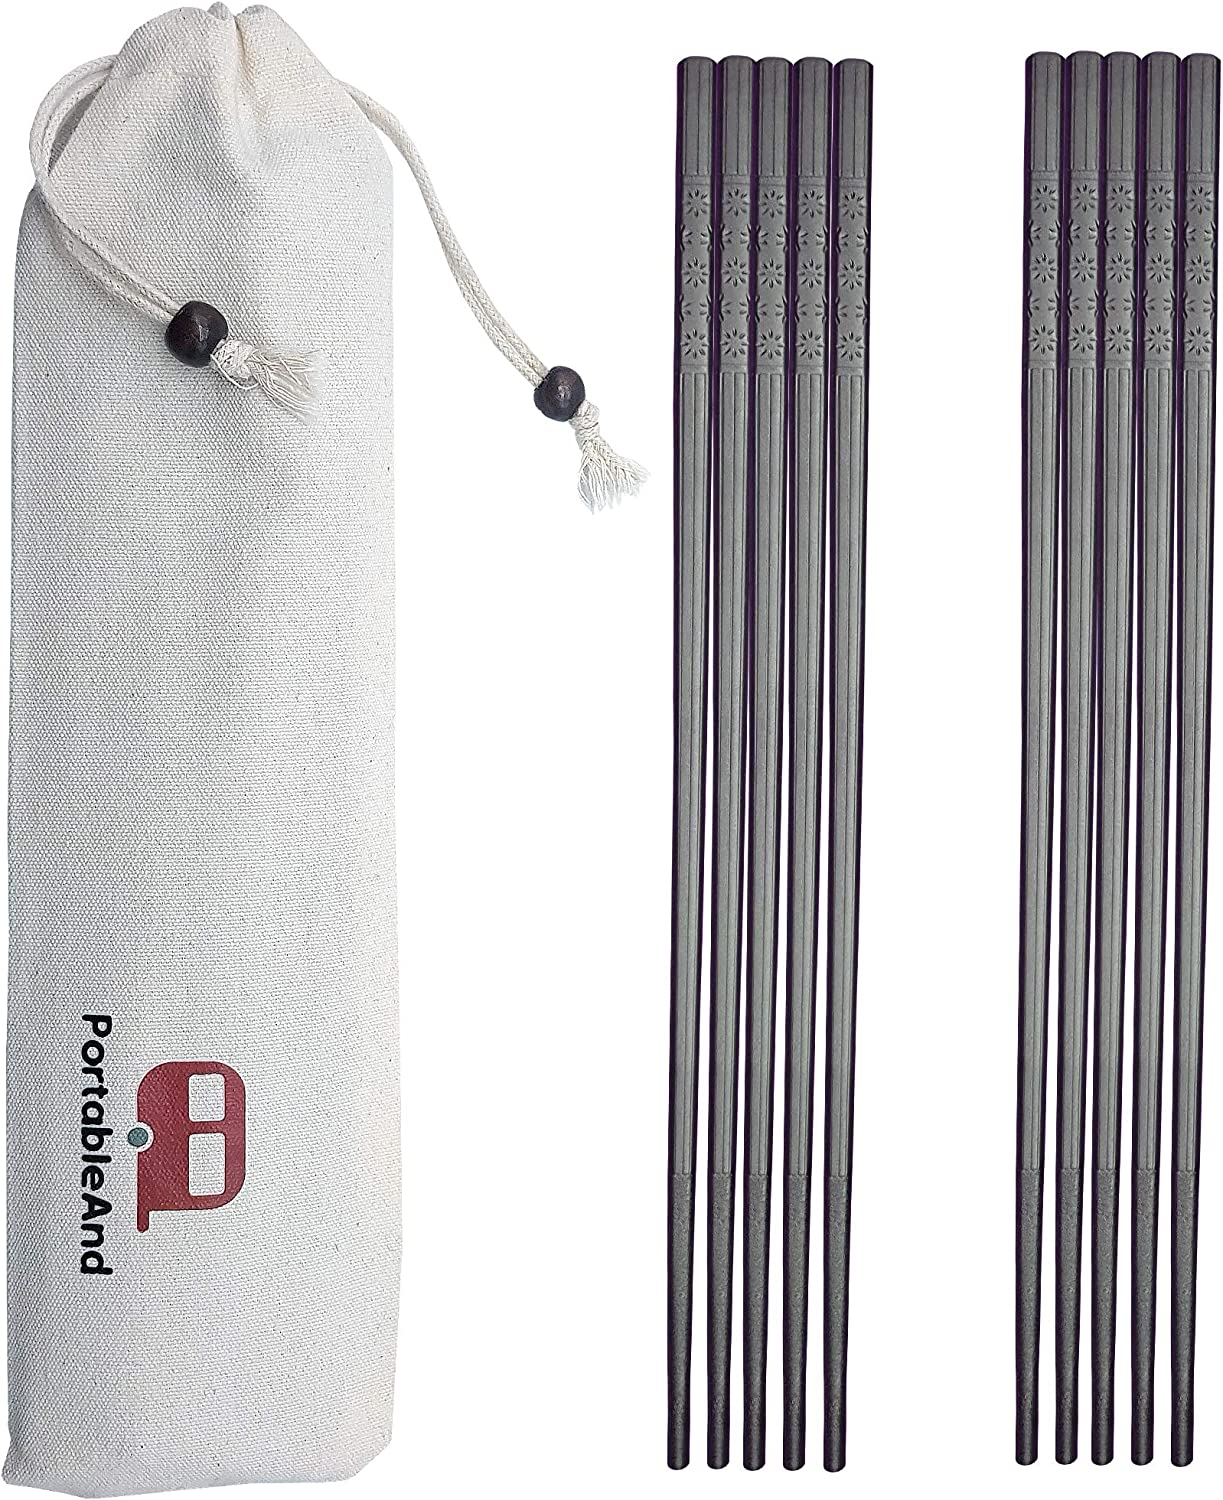 PortableAnd 5-pairs Fiberglass Reusable Chopsticks Set Dishwasher Safe 9 1/2 Inches for Sushi, Noodles and Asian Food with Multi-purpose Cotton Drawstring carry case